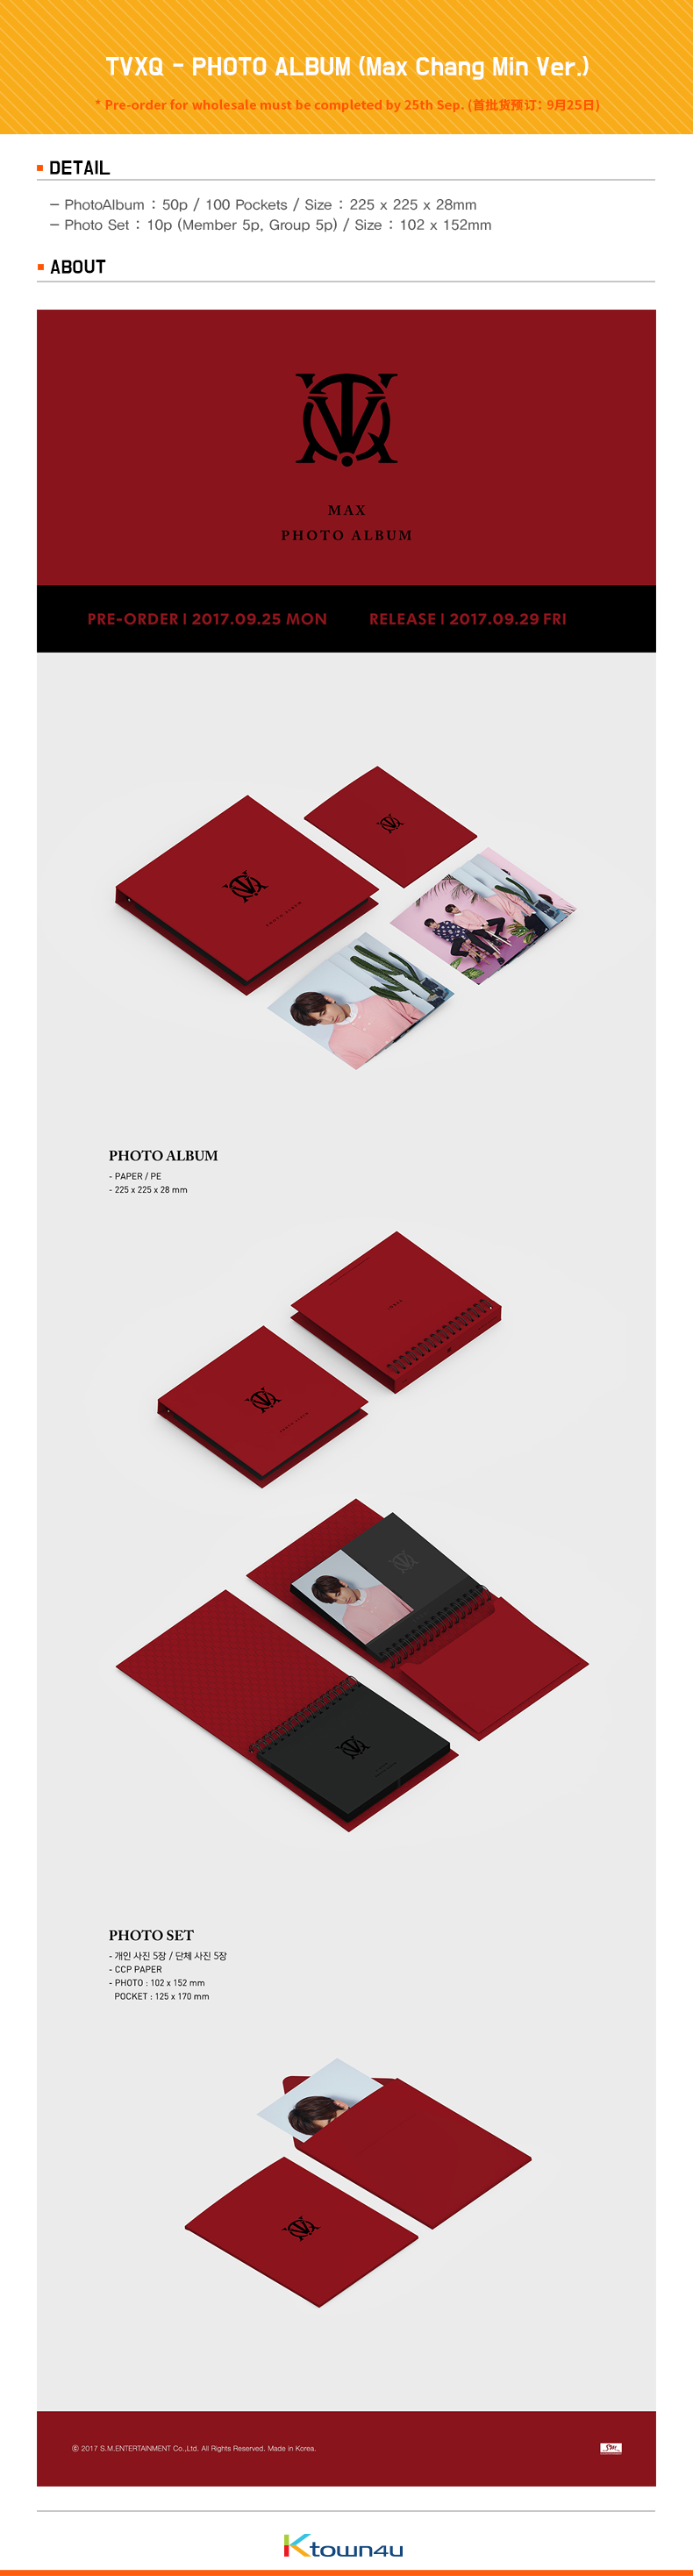 TVXQ - PHOTO ALBUM (Max Chang Min Ver.)